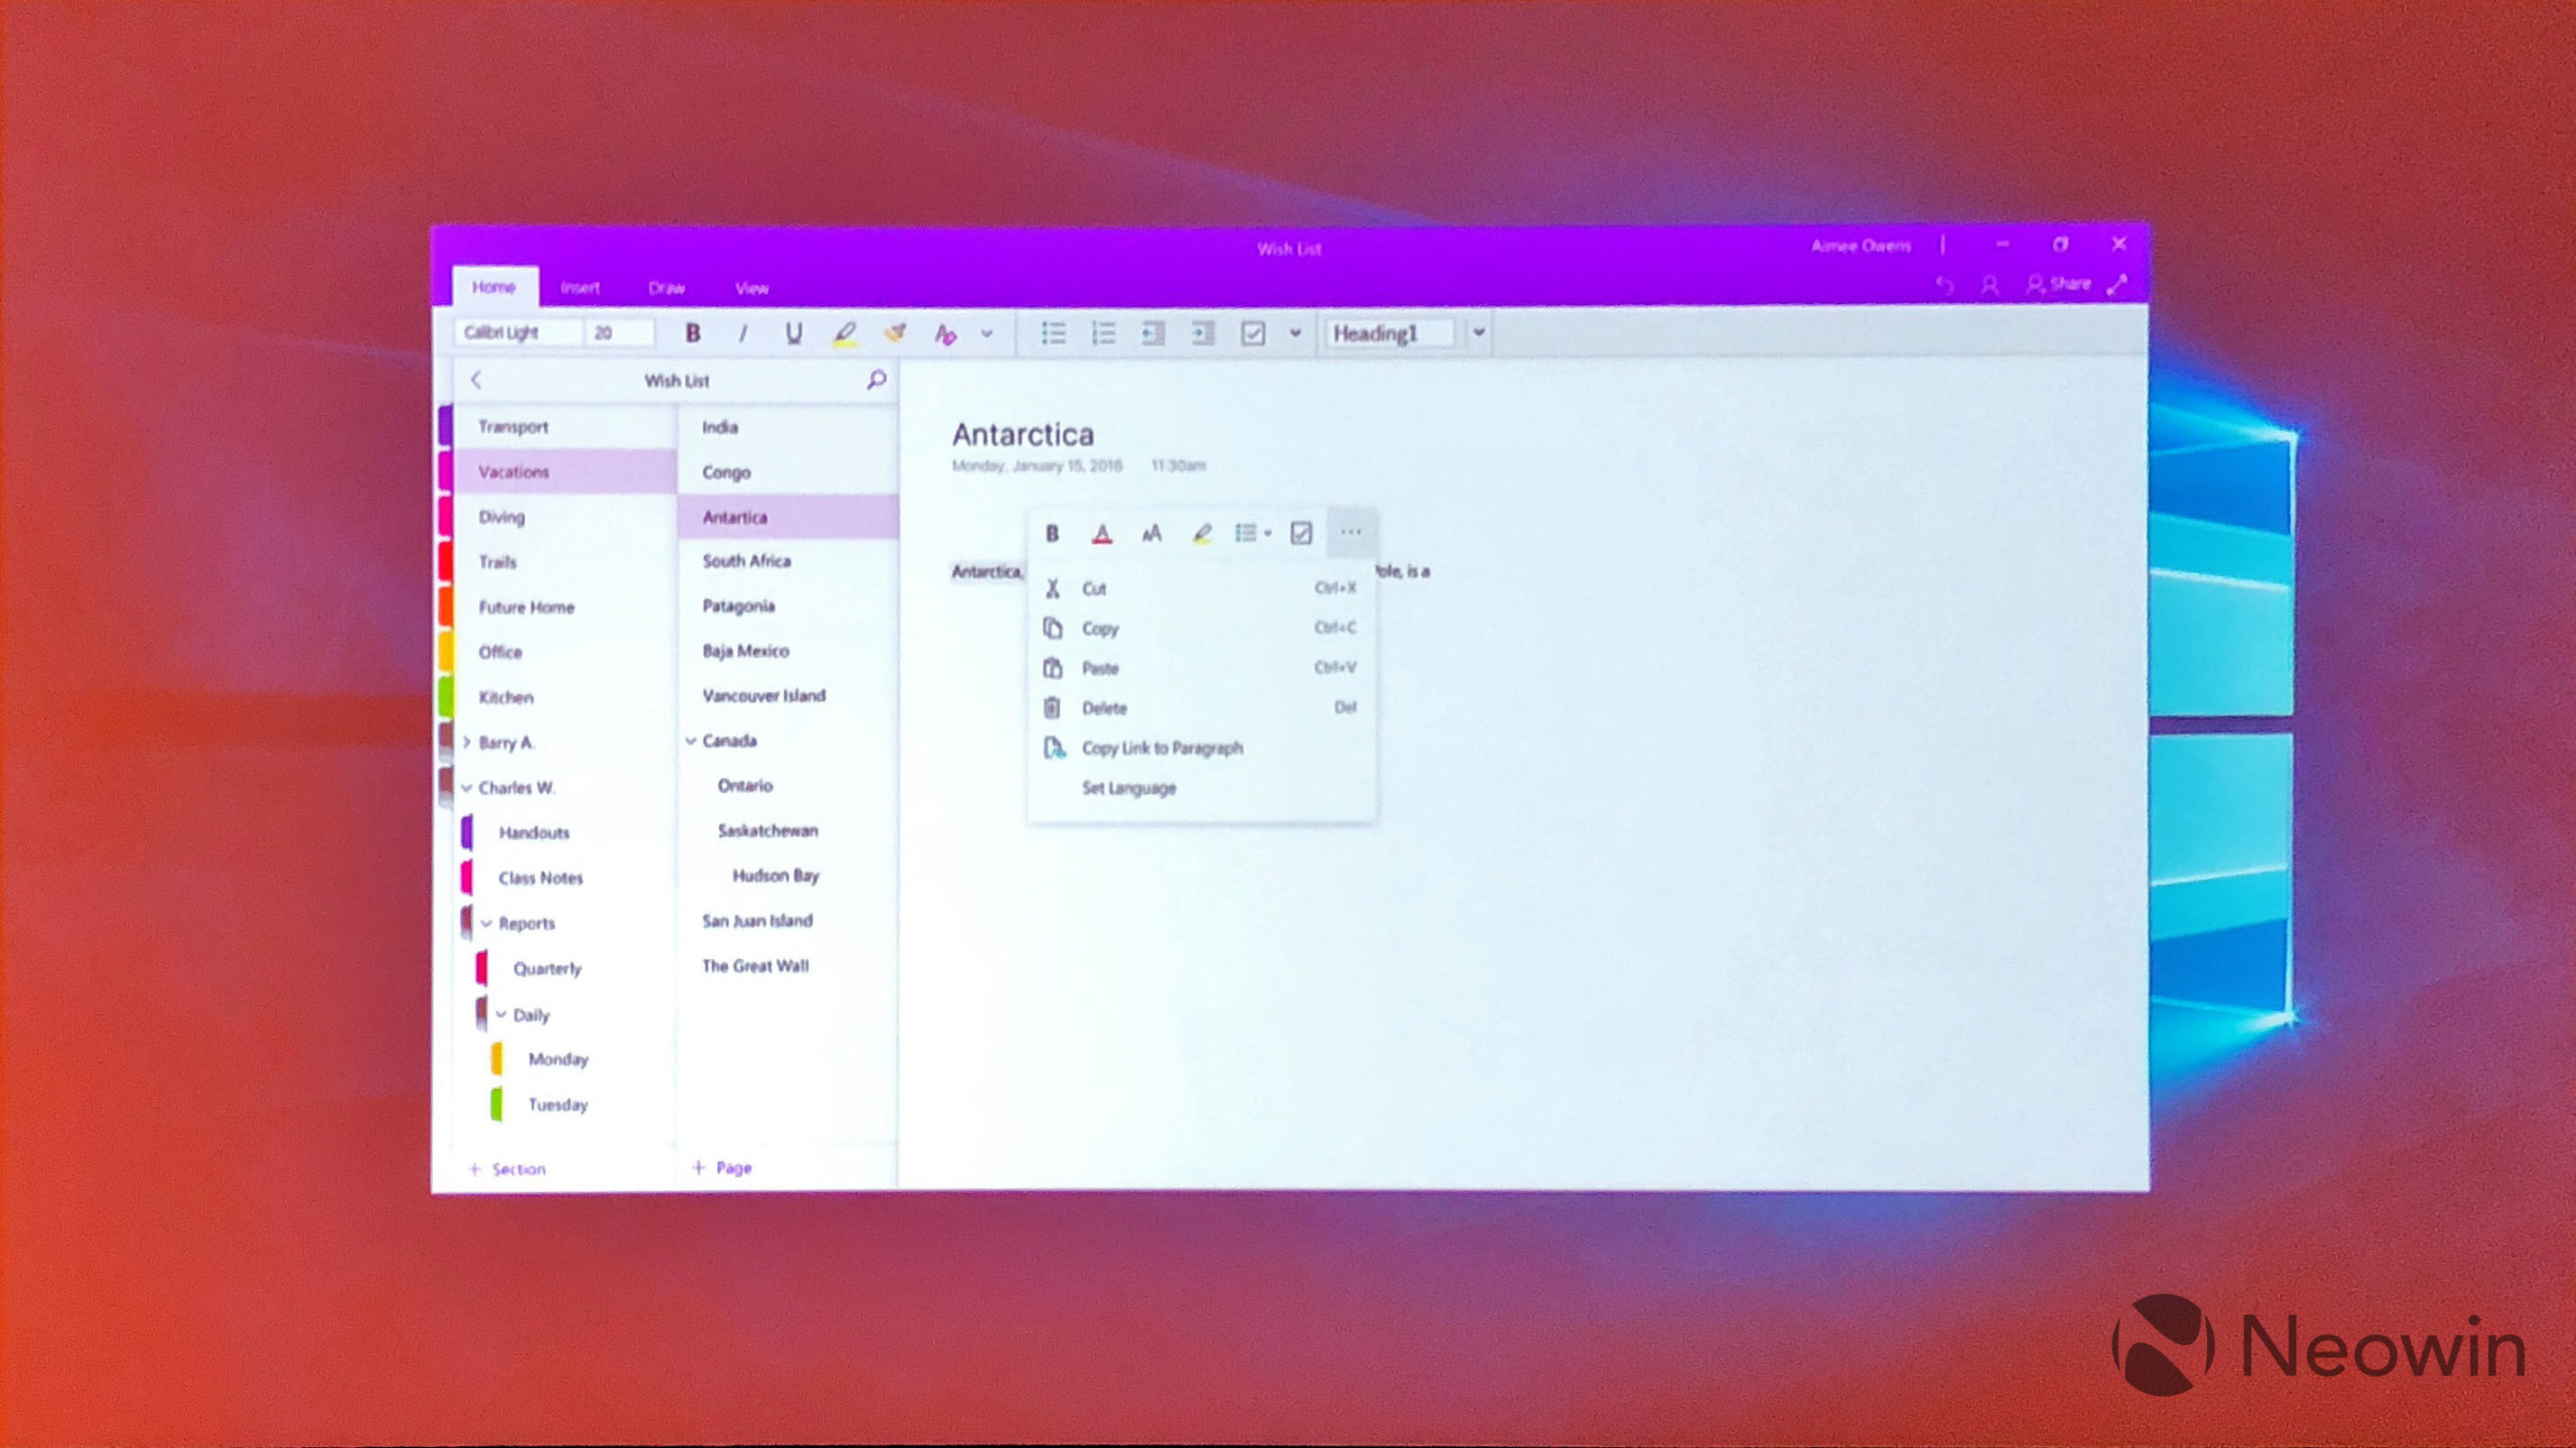 Microsoft Details What S Coming In 2018 In Windows 10 For Fluent Design Neowin